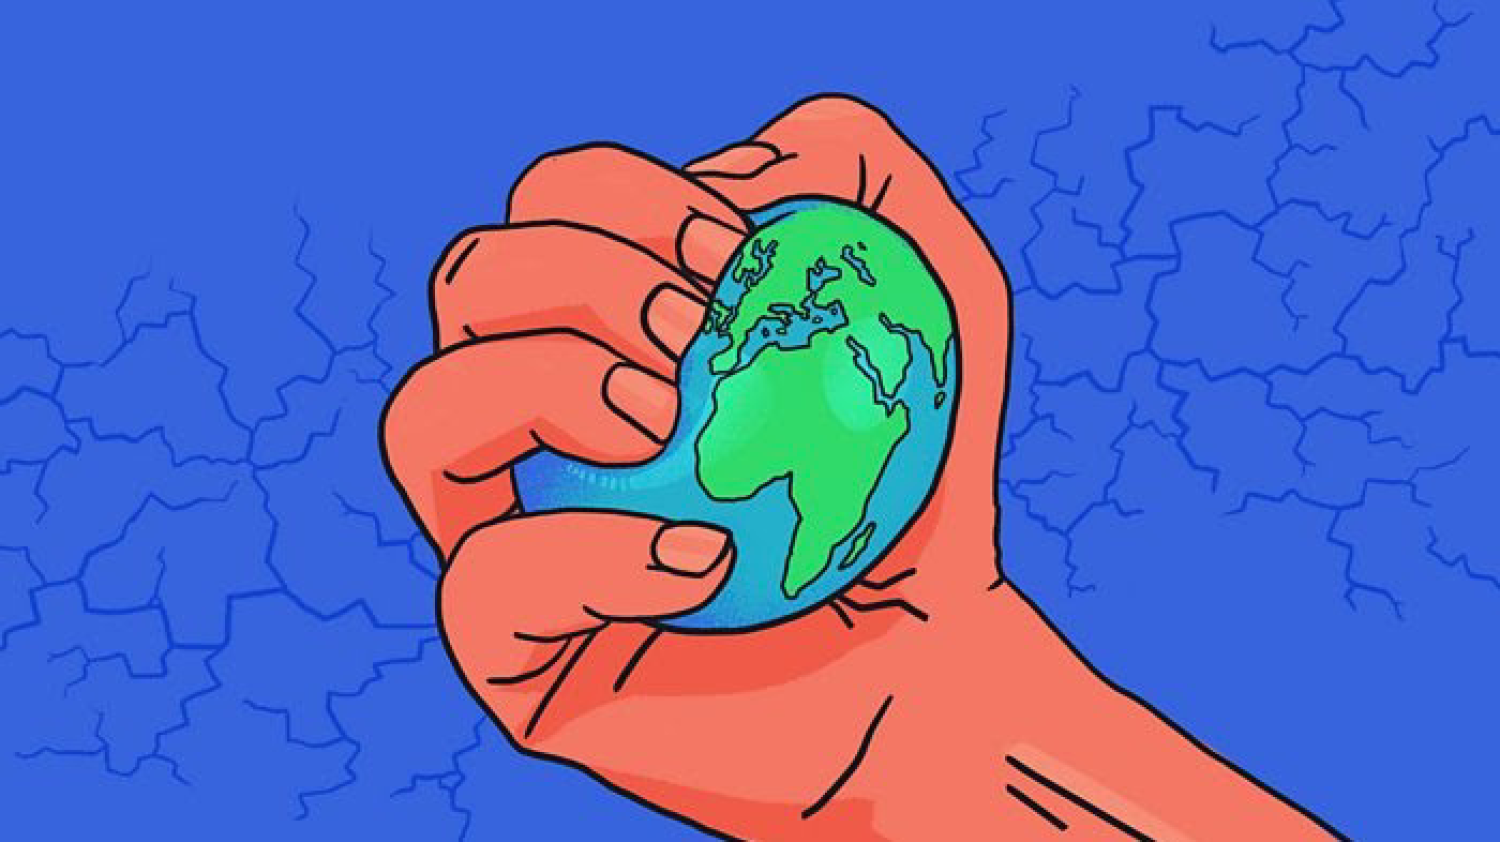 World as a stress ball in someone's hand